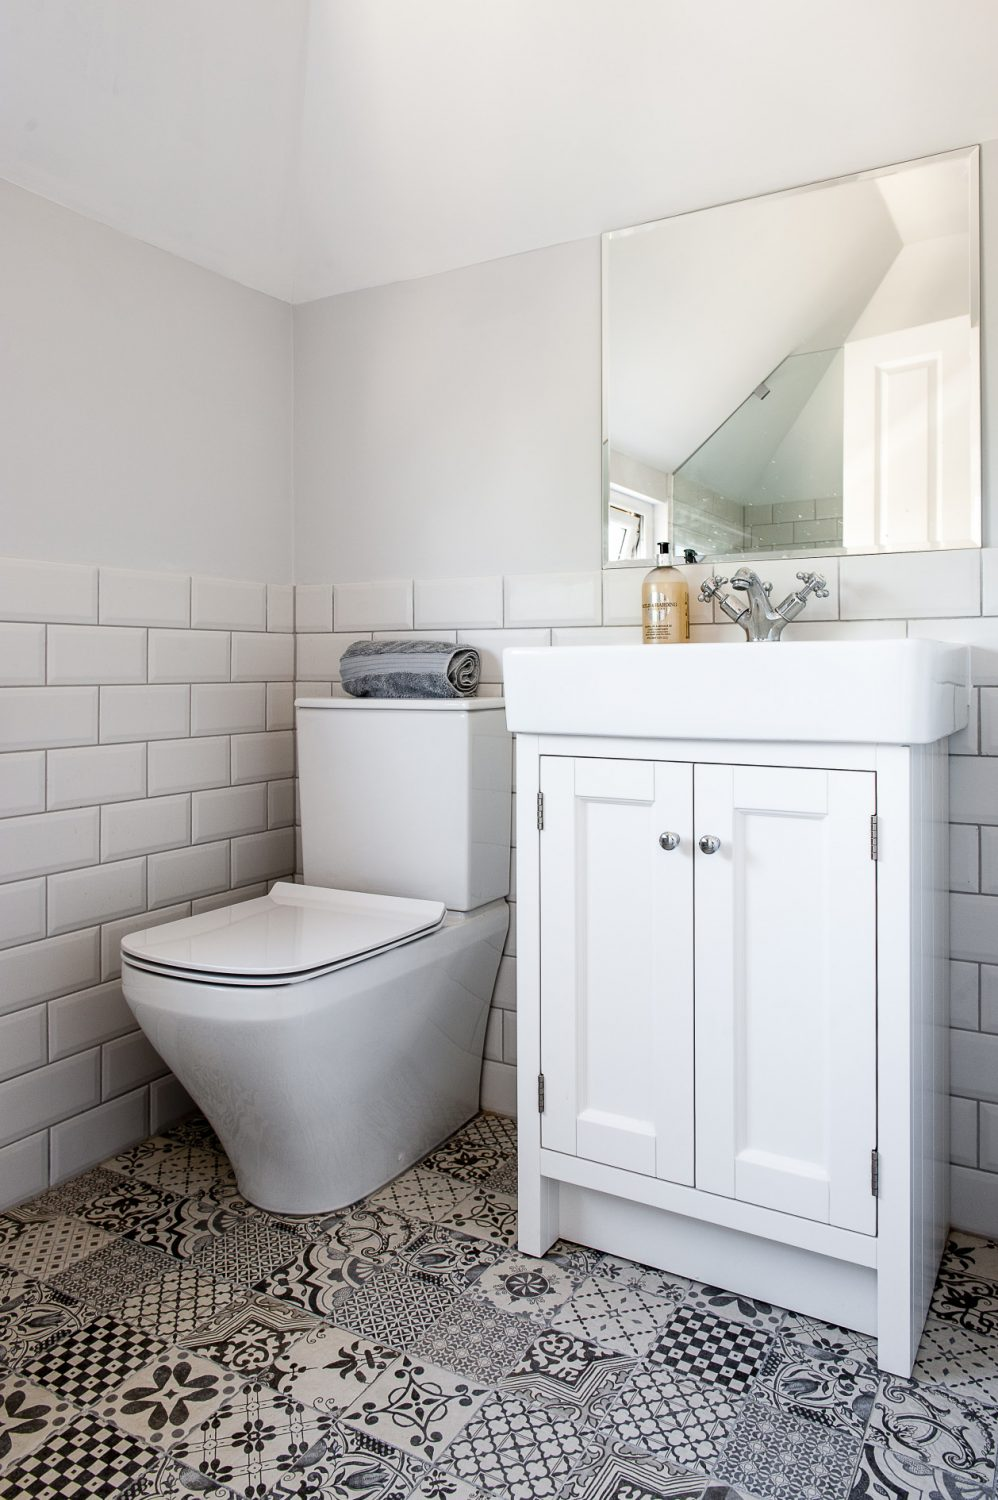 The vanity unit in the guest bathroom upstairs was also built by Stonewood. The floor tiles are from Direct Tile Warehouse in Cardiff